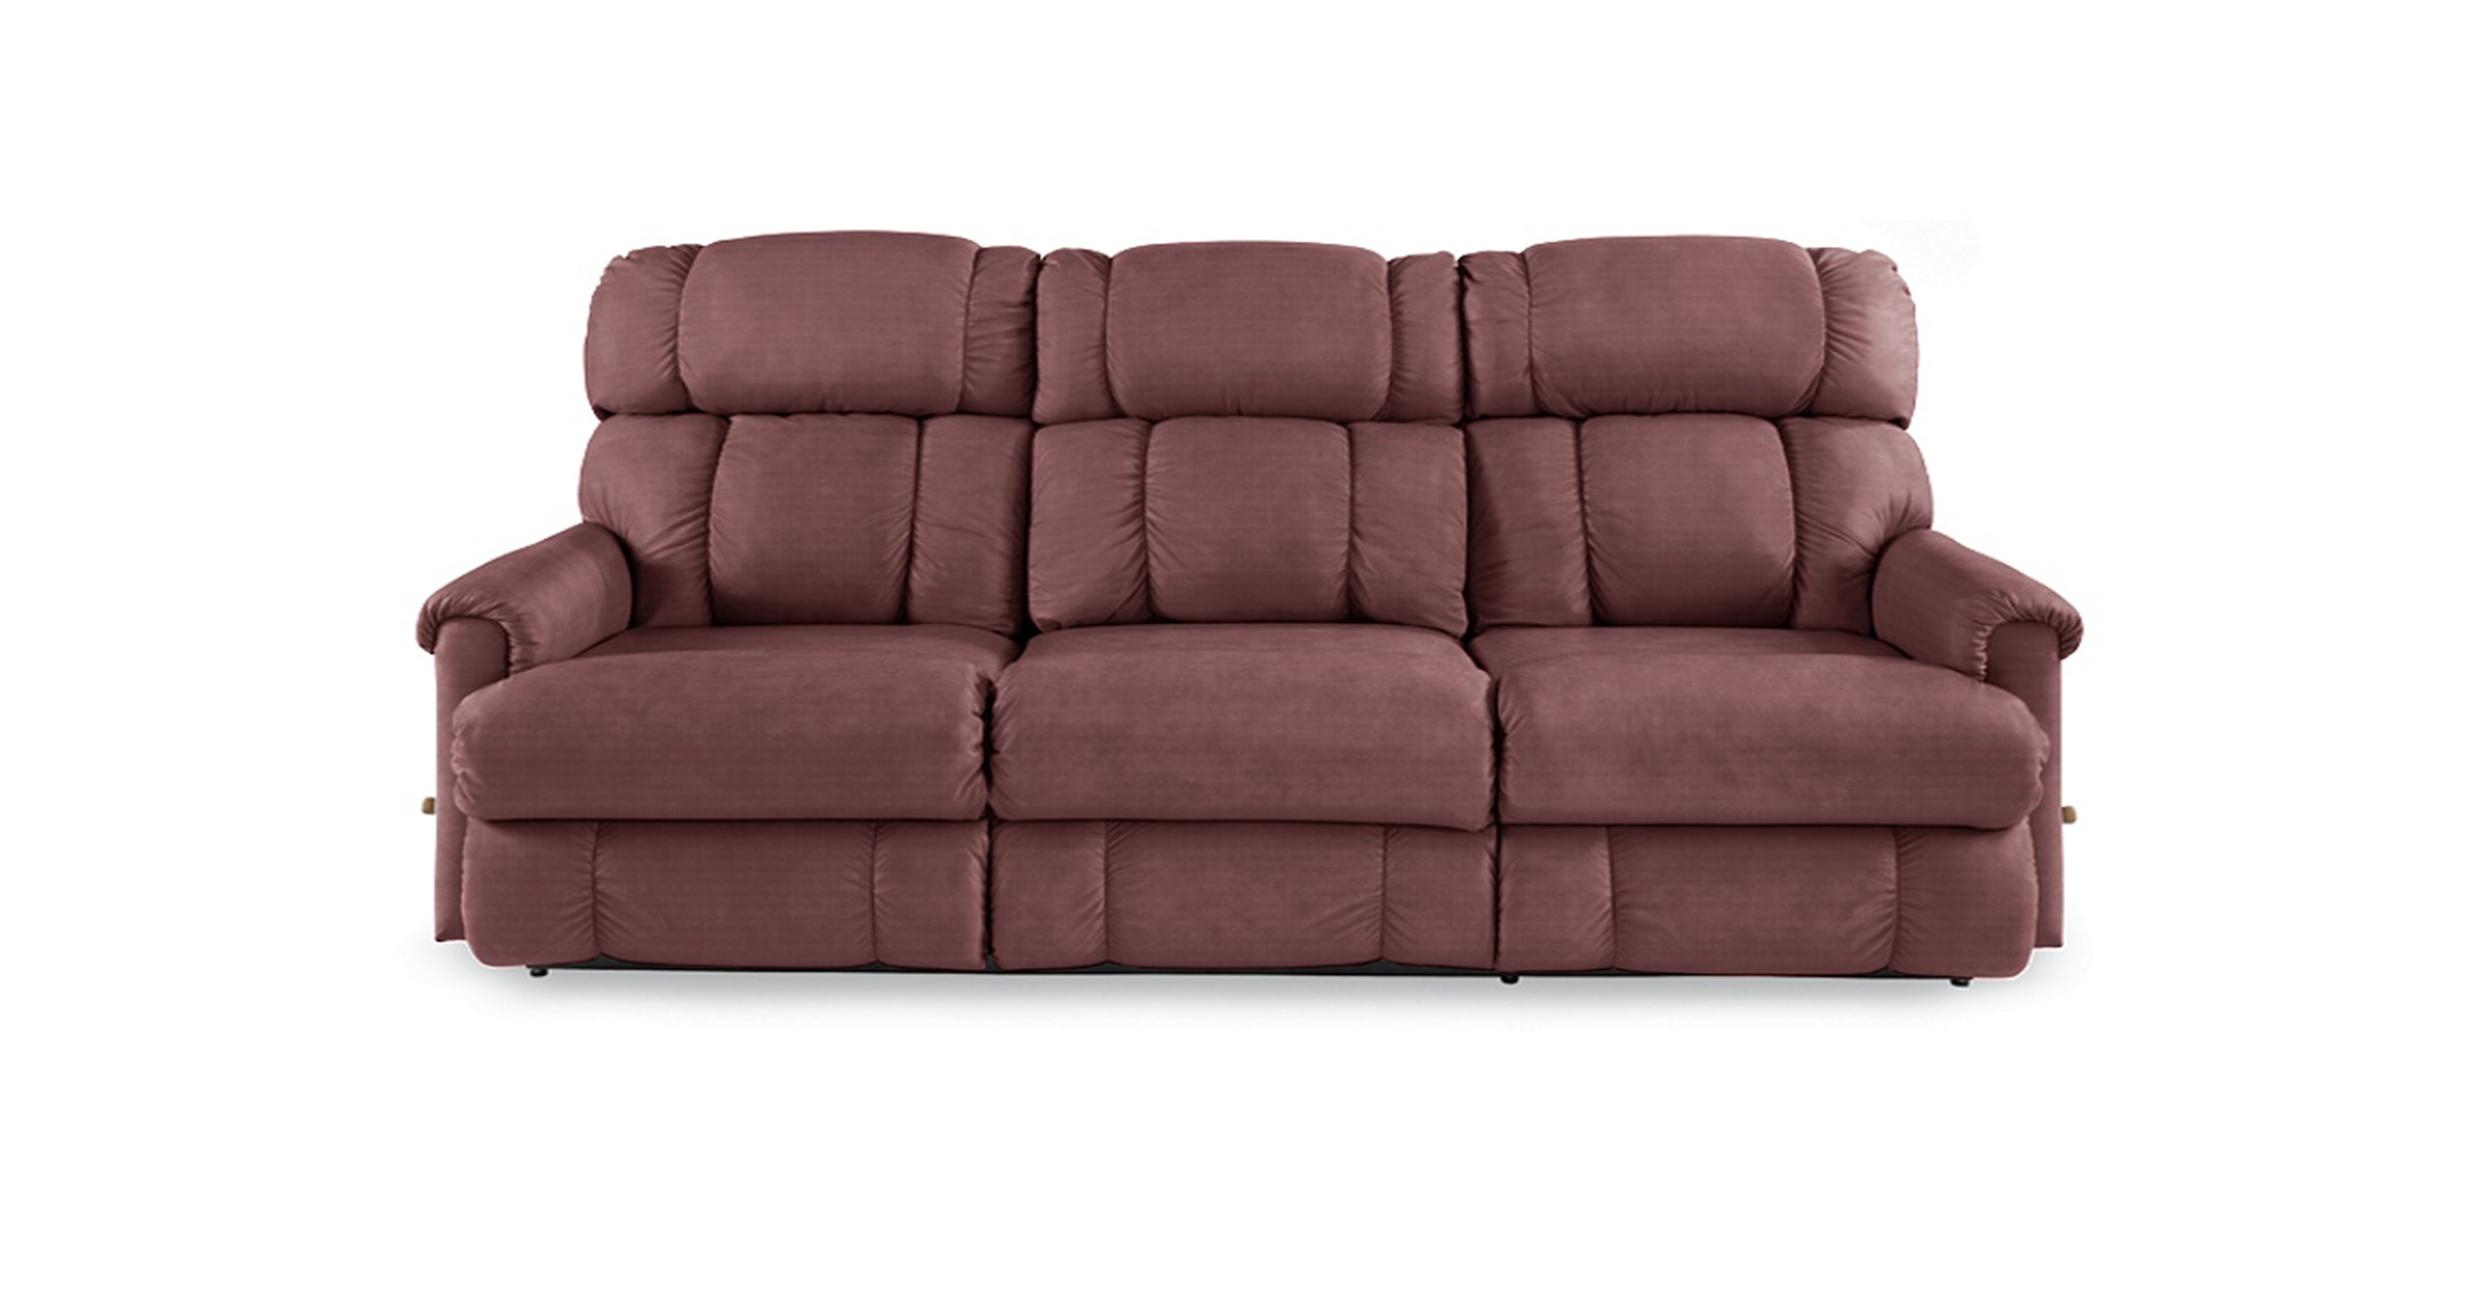 Lazy Boy Sofas And Loveseats – Cornett's Furniture And Bedding In Lazy Boy Sofas (Image 9 of 20)